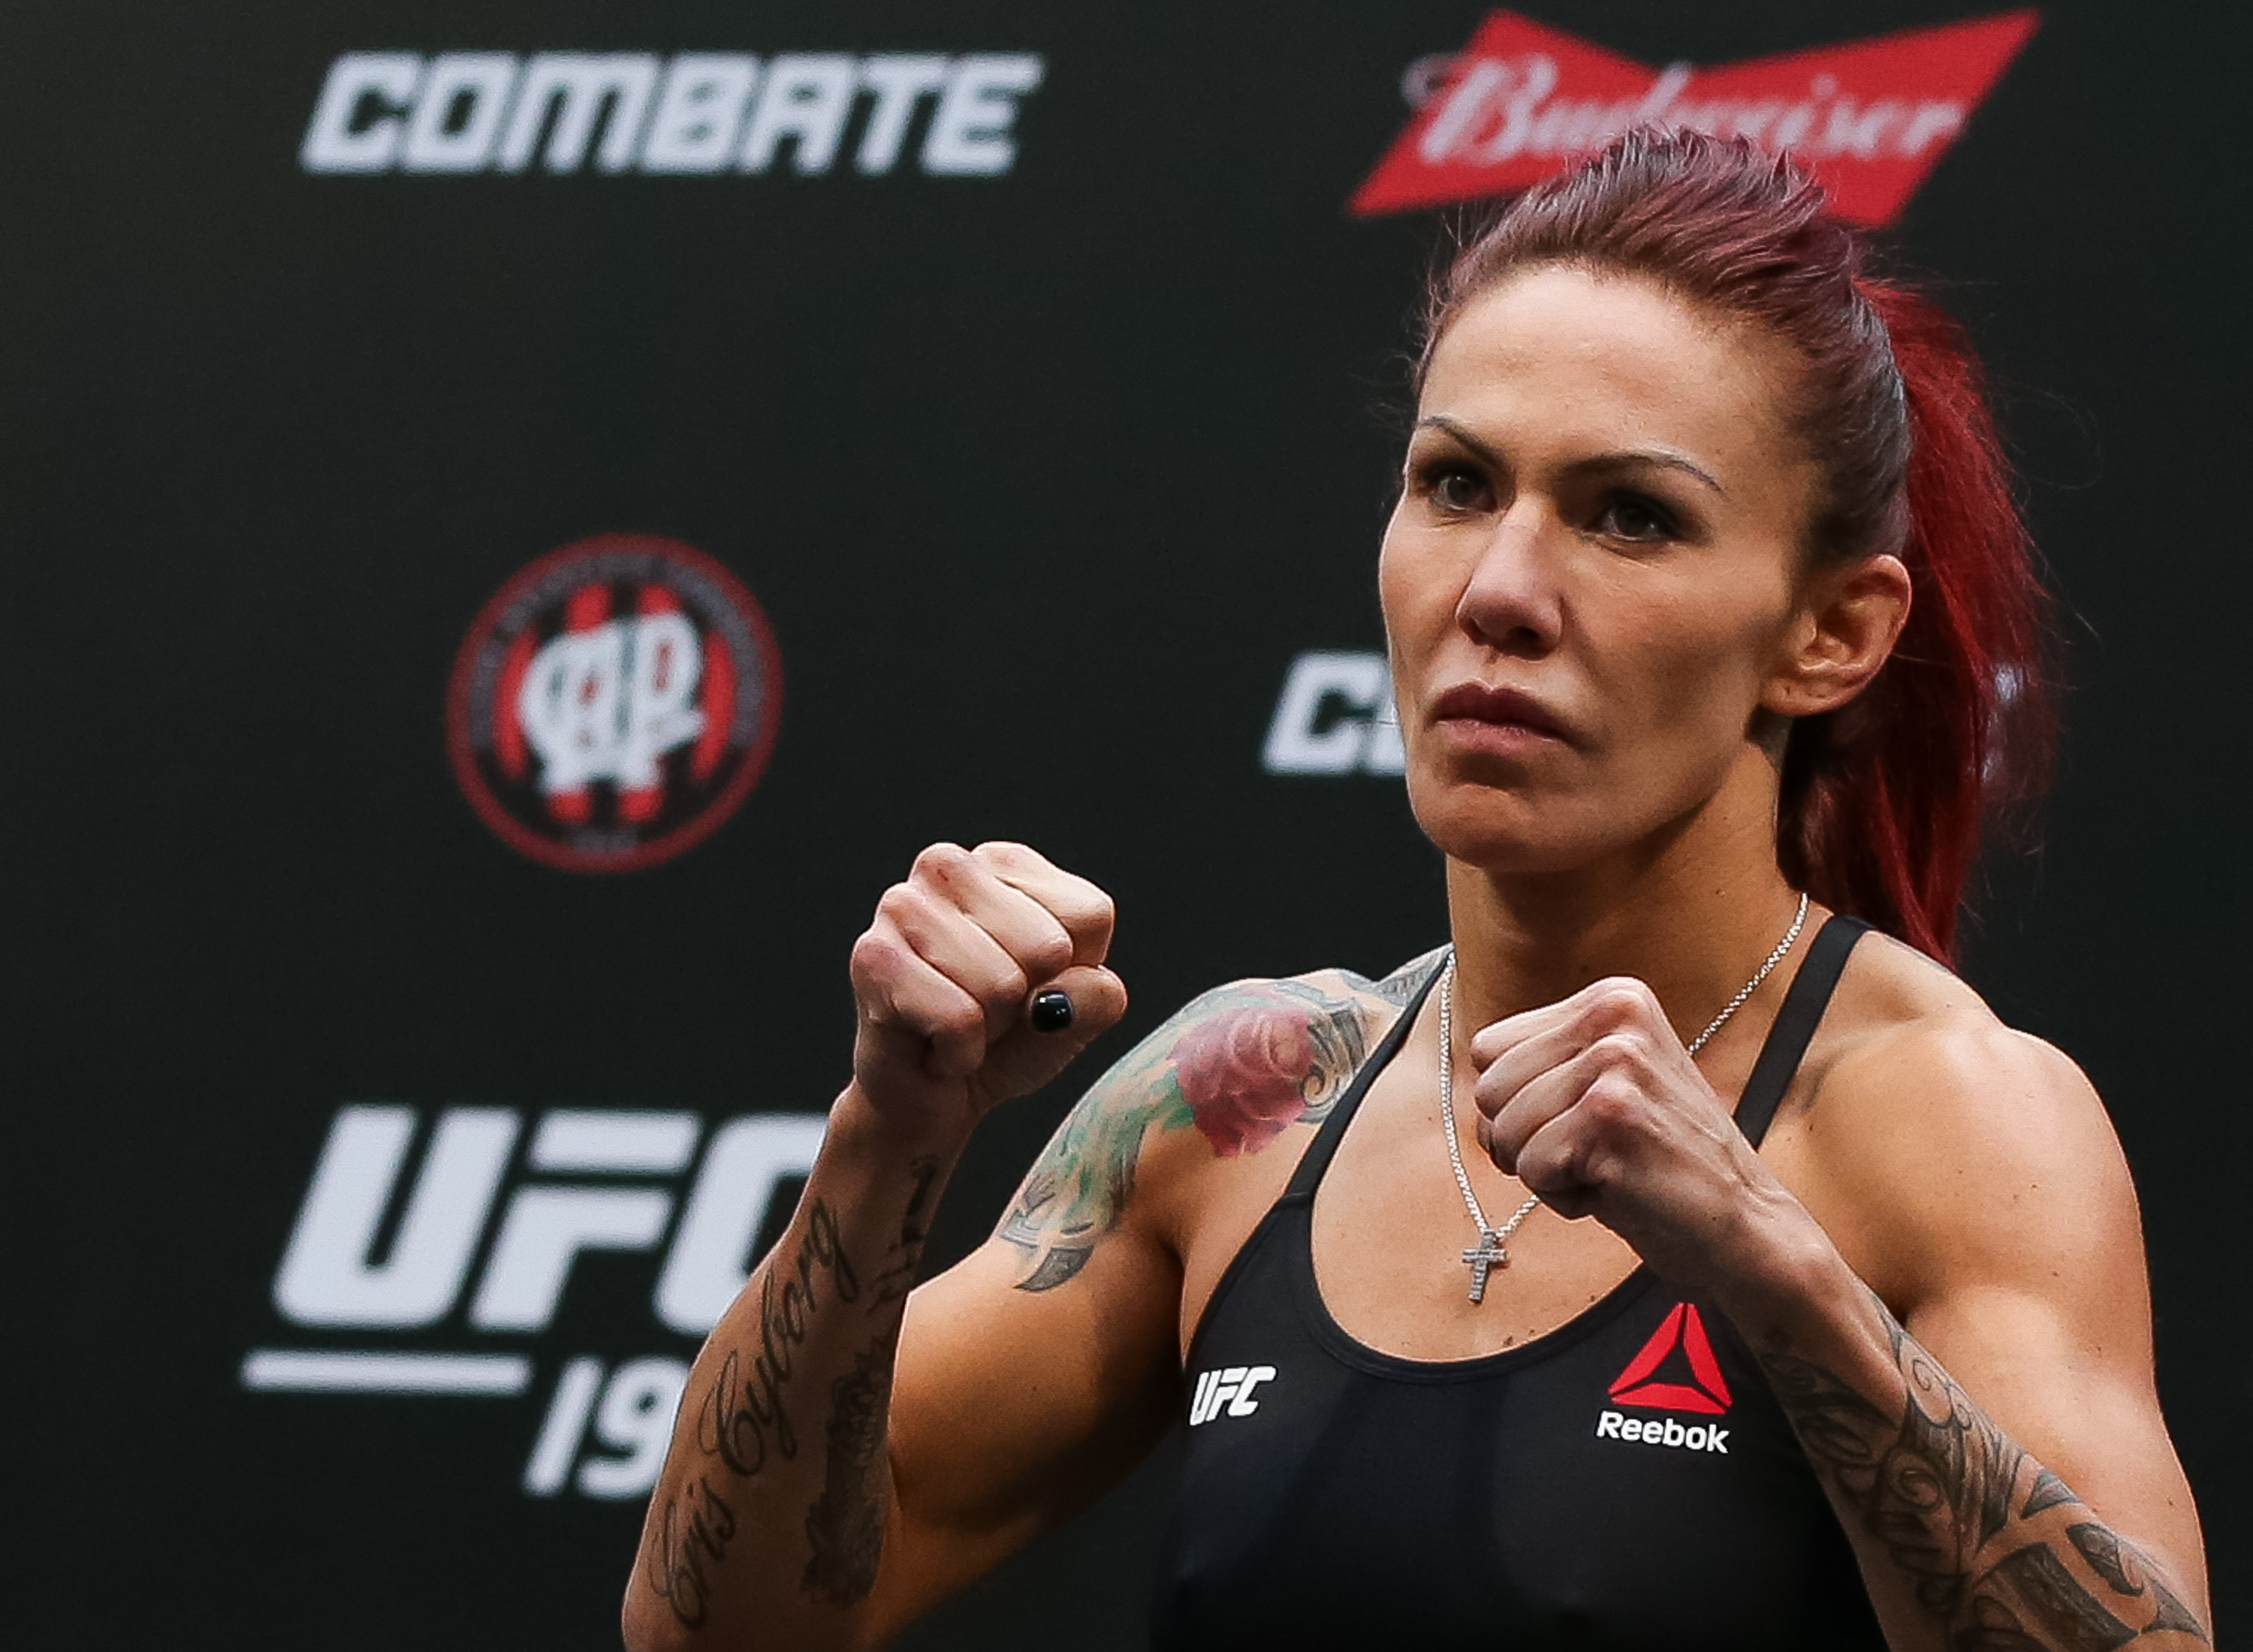 UFC: Cris Cyborg says she will adopt her niece at the end of the month and keep 7-year old promise - Cris Cyborg